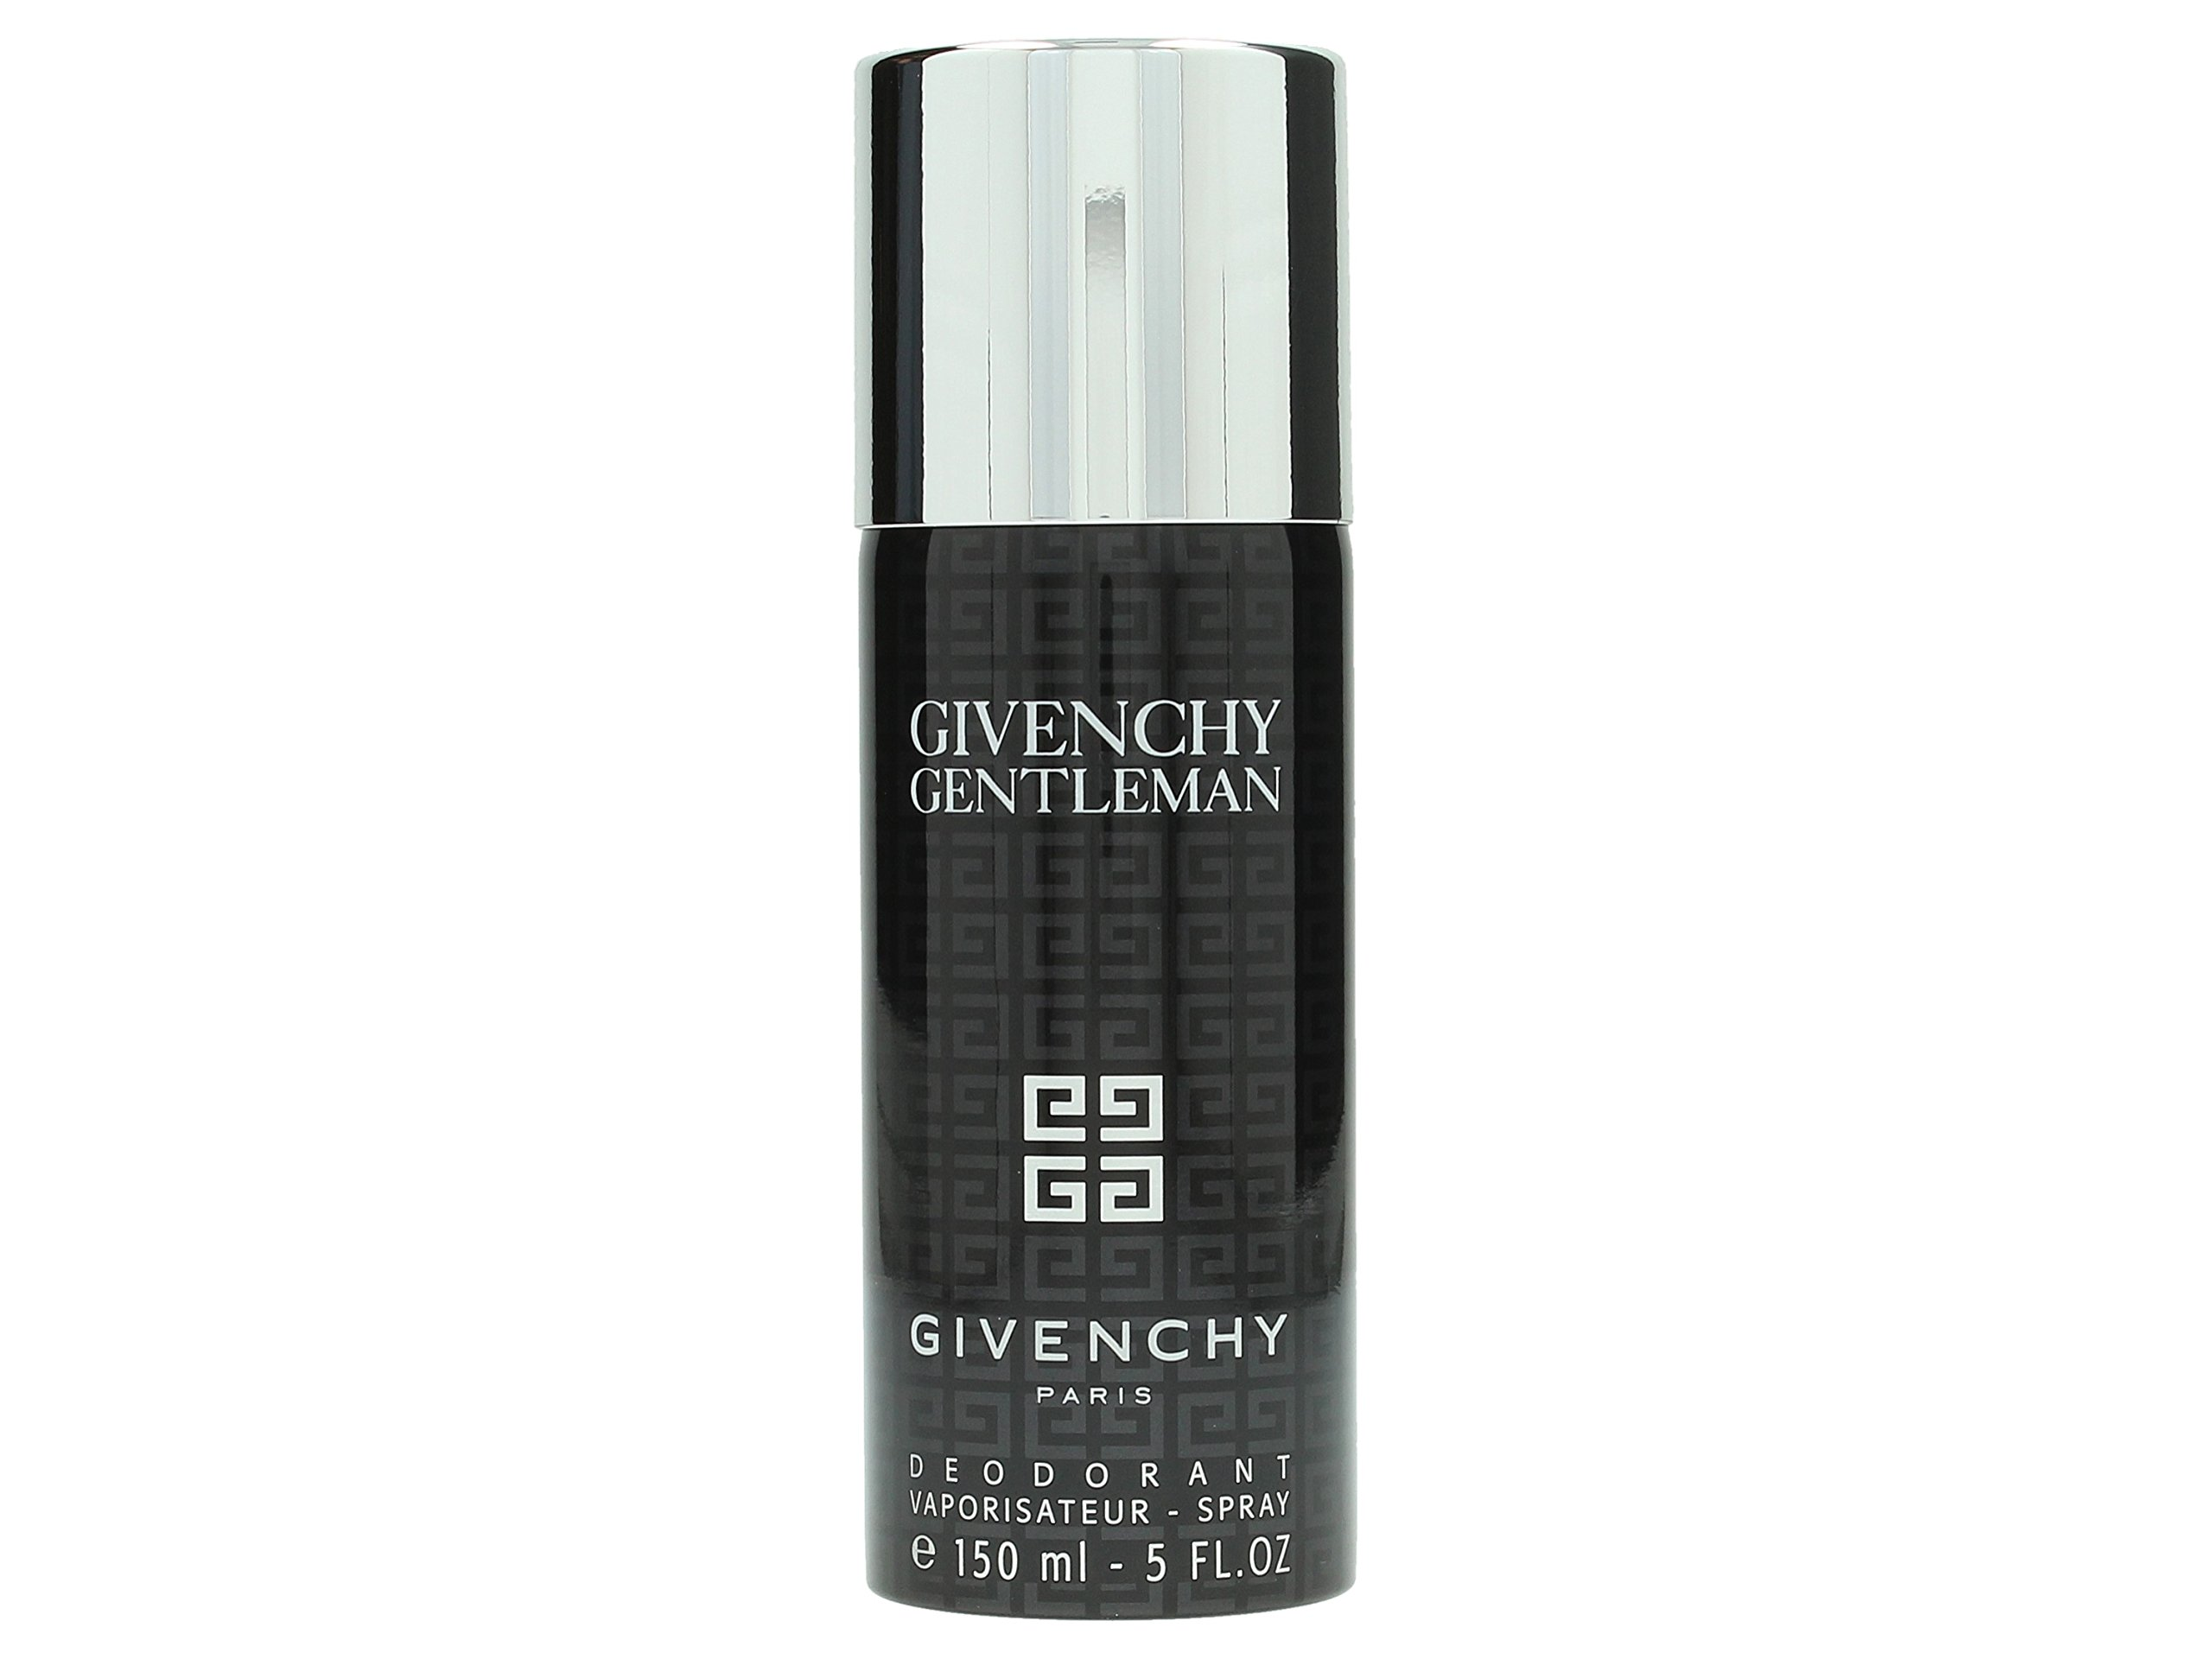 Givenchy Gentleman by Givenchy for Men 5.0 oz Deodorant Spray